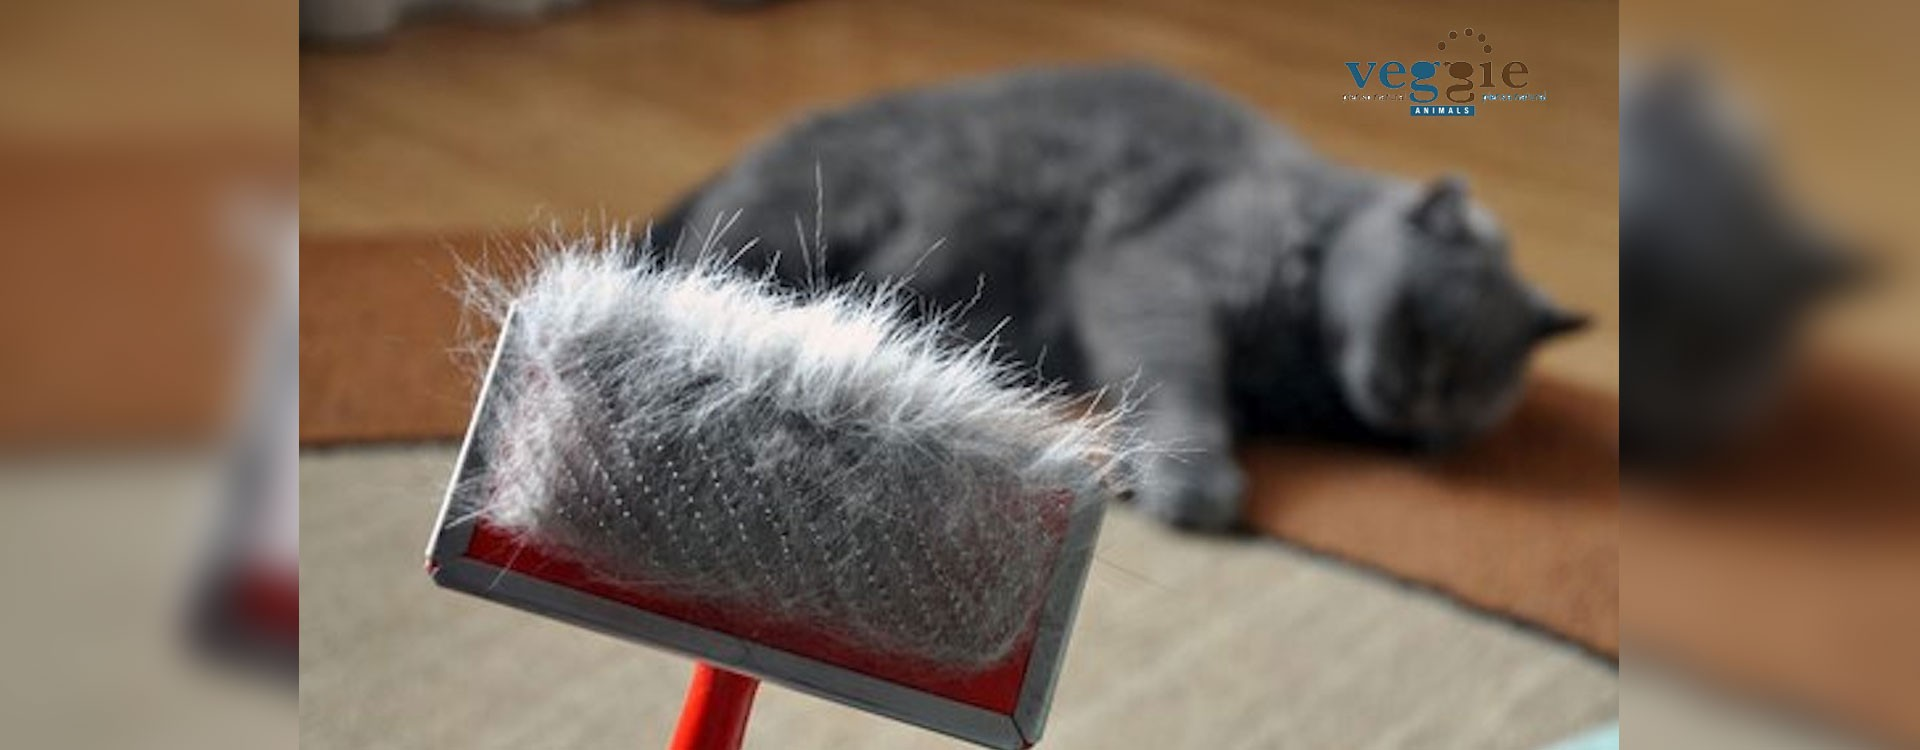 My cat is shedding